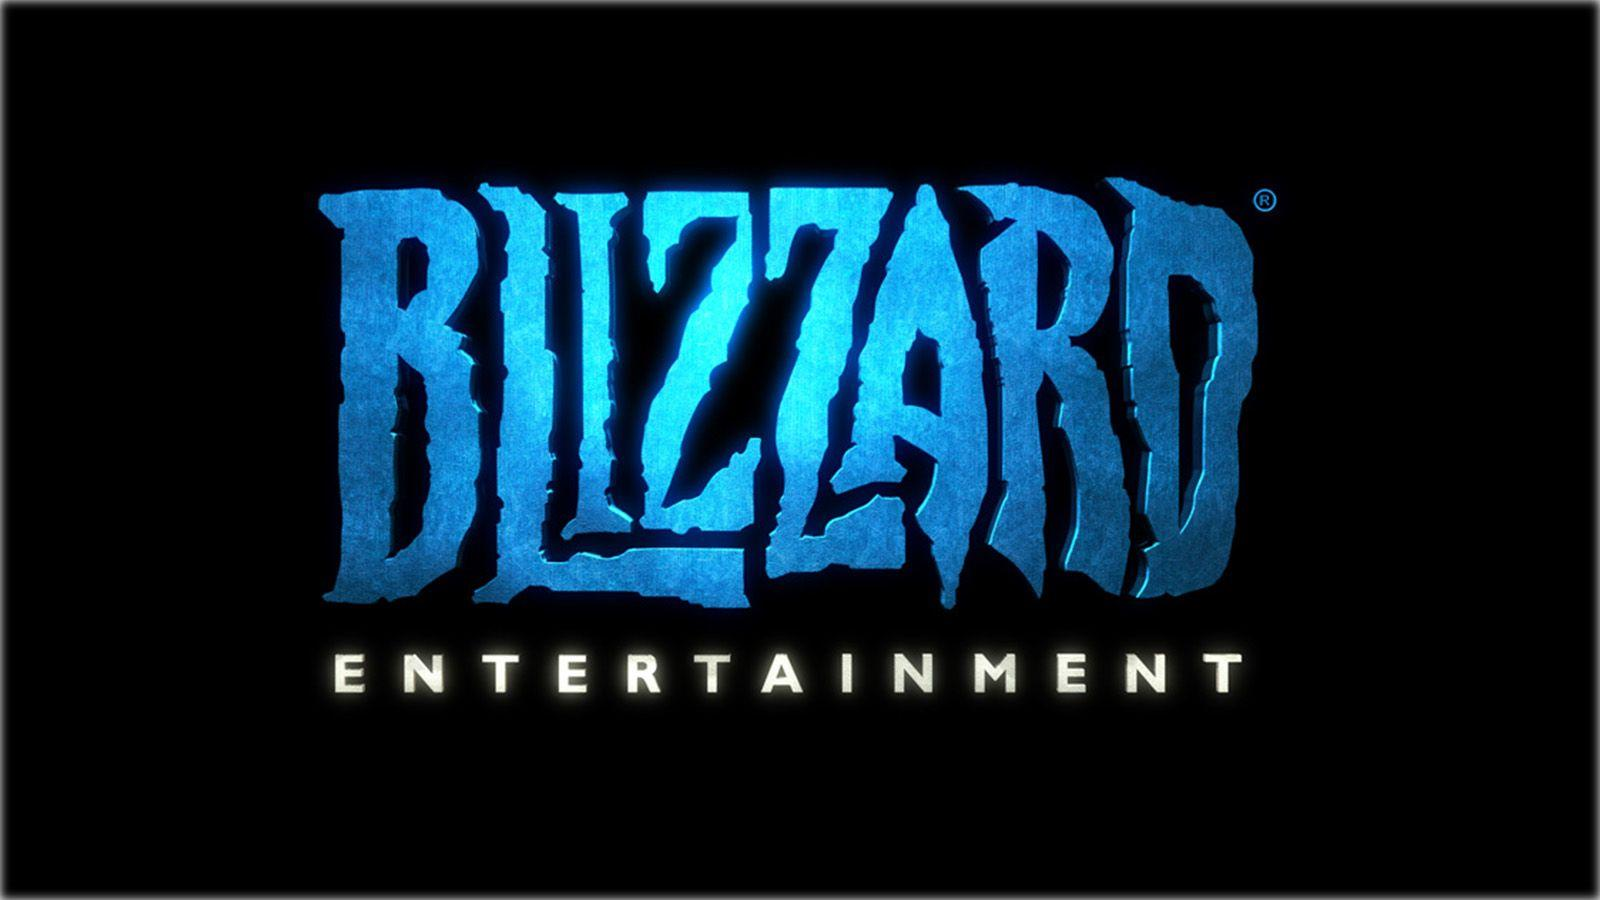 Blizzard Entertainment Visits Full Sail's Campus - Hero image